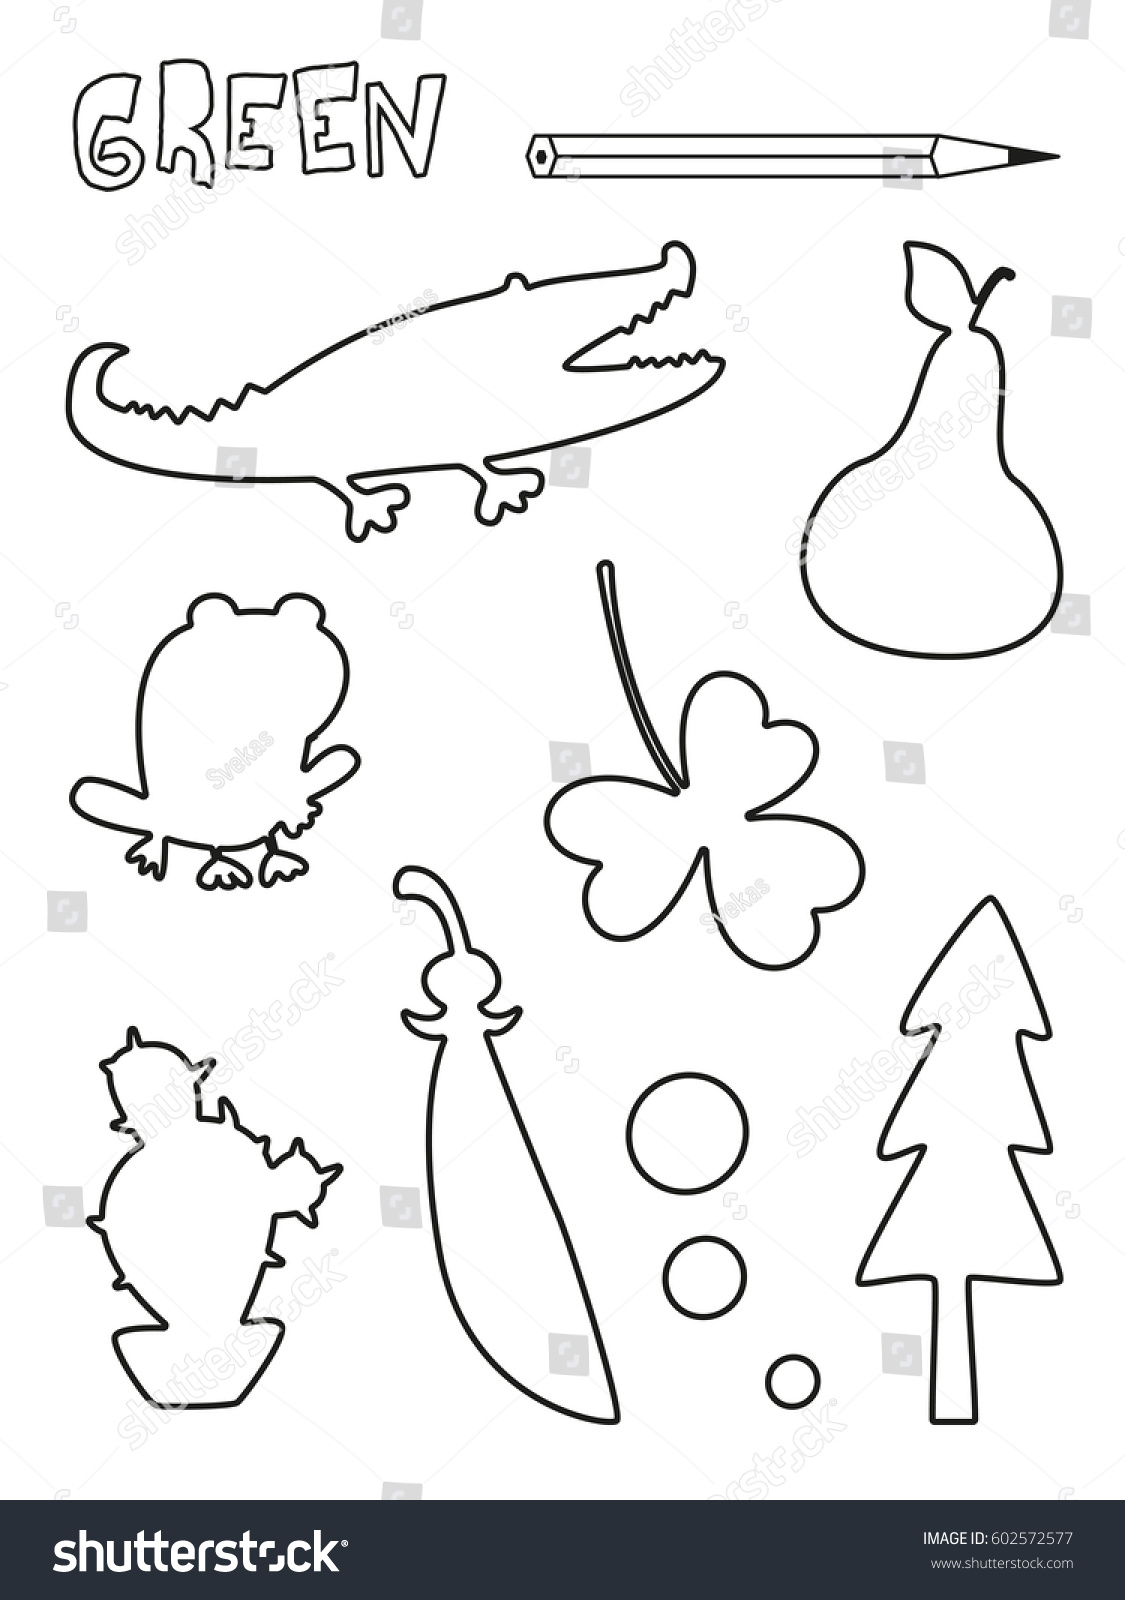 Coloring Page Green Things Set Single Color Worksheets Peas Crocodile Cactus